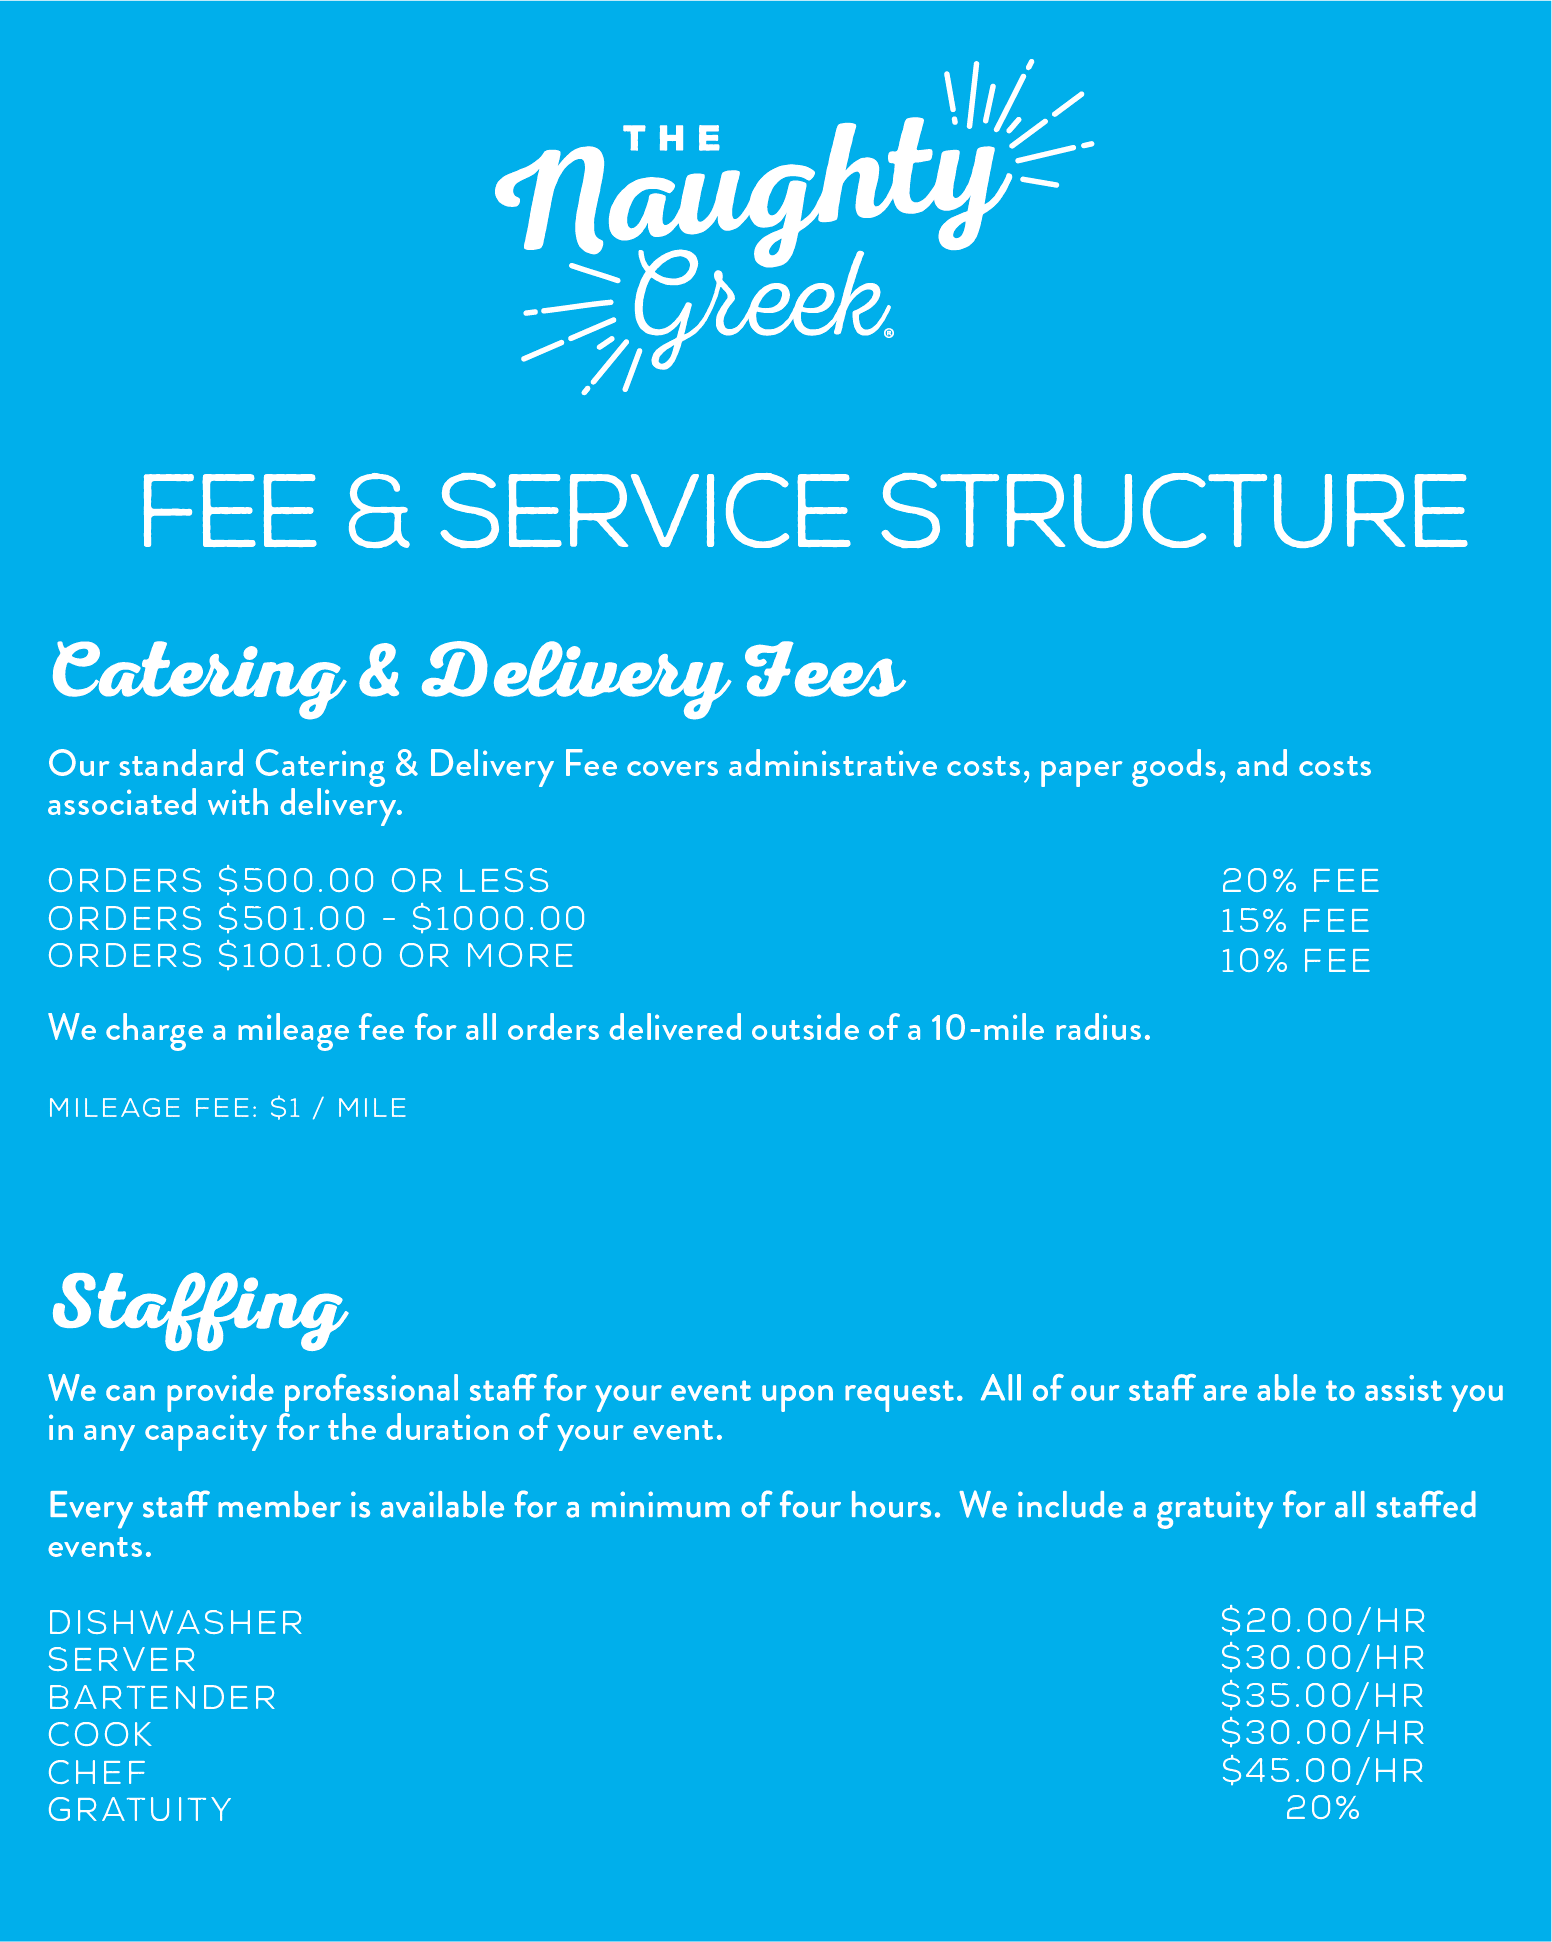 The_Naughty_Greek_Catering_Fee_and_Service_Structure.png